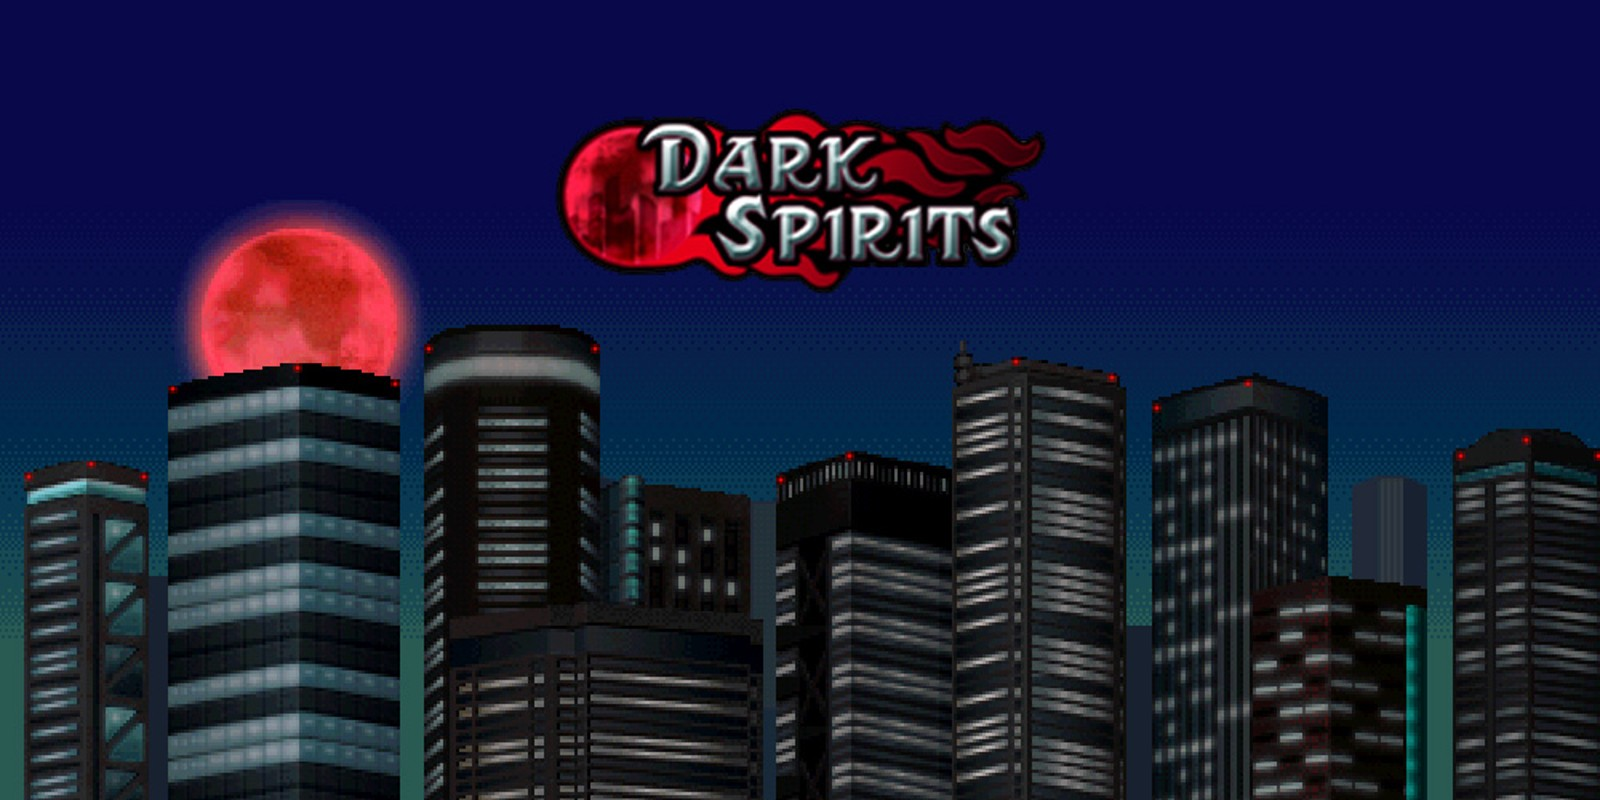 GO Series Dark Spirits